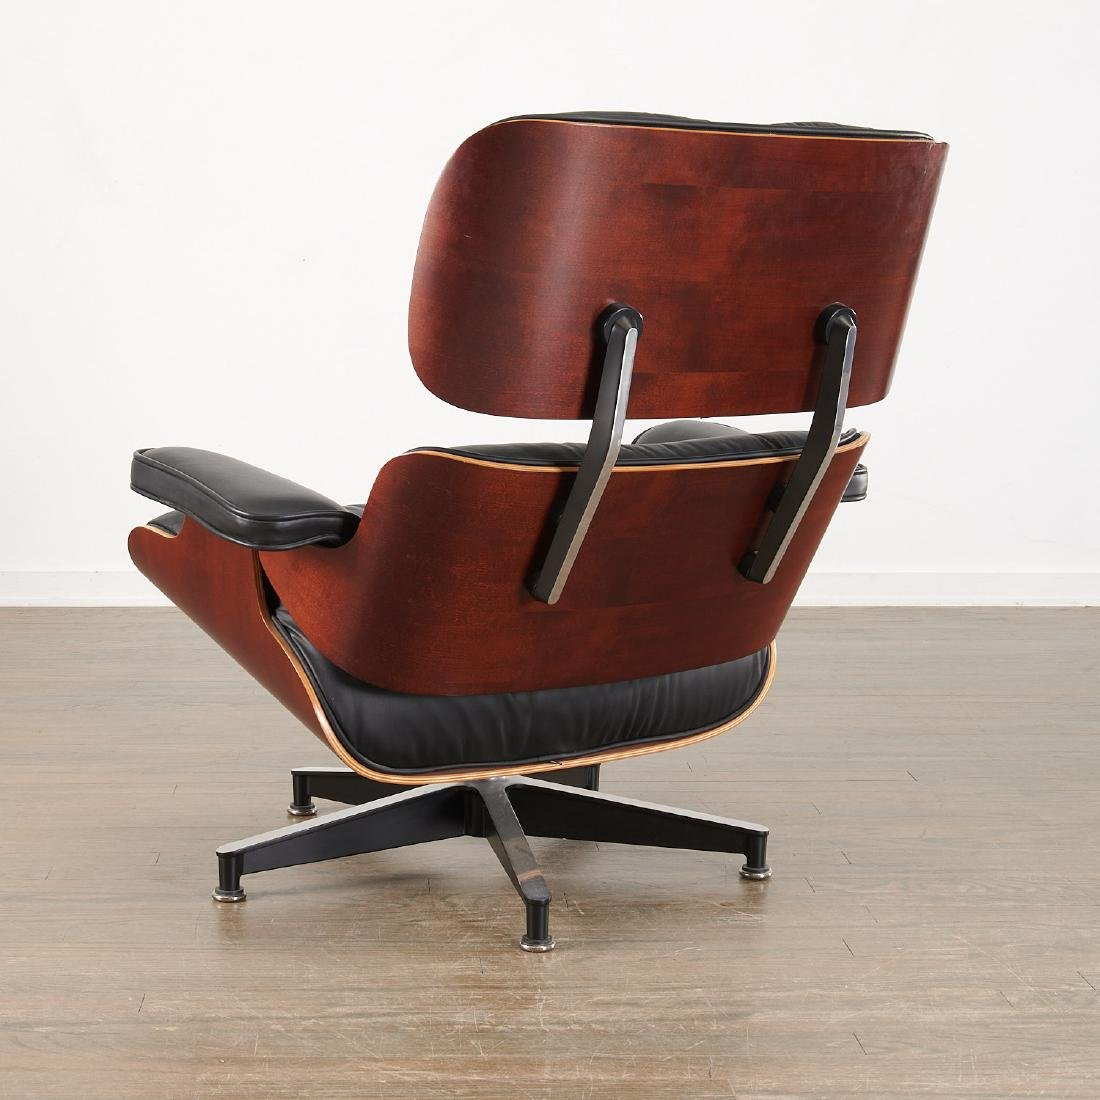 Charles and Ray Eames, Lounge chair and ottoman - 3